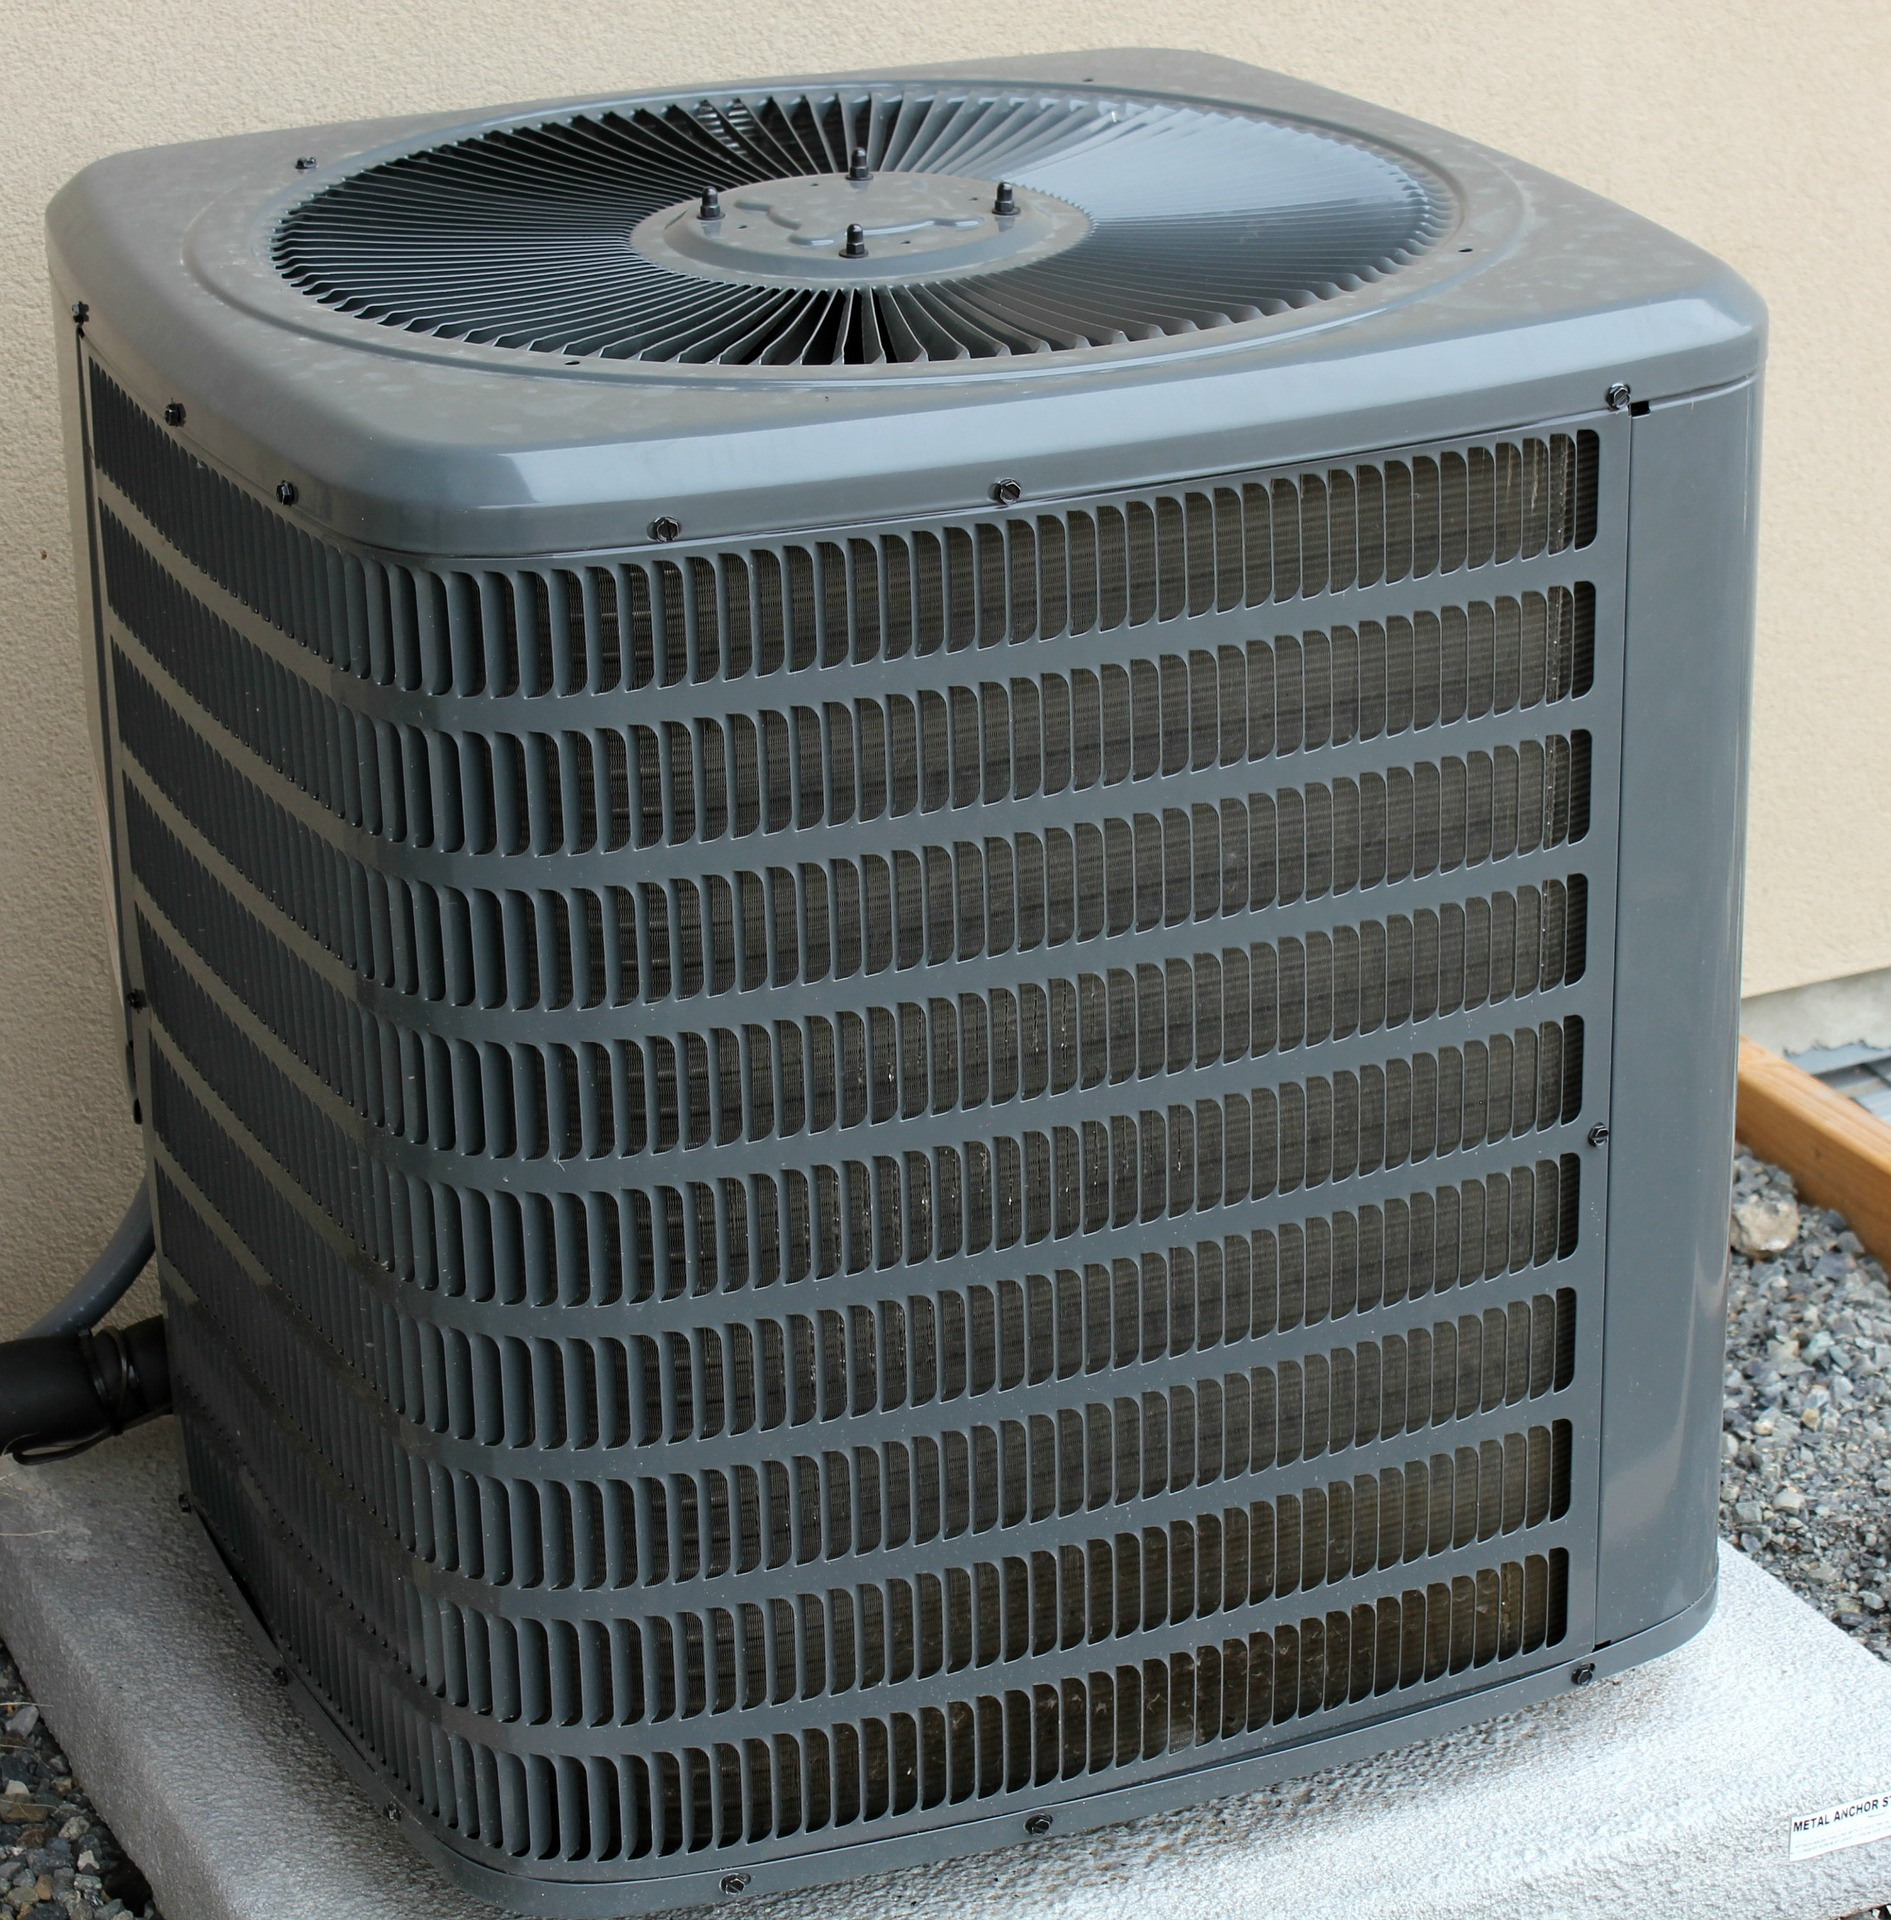 A properly running air conditioning system is critical to comfortable living